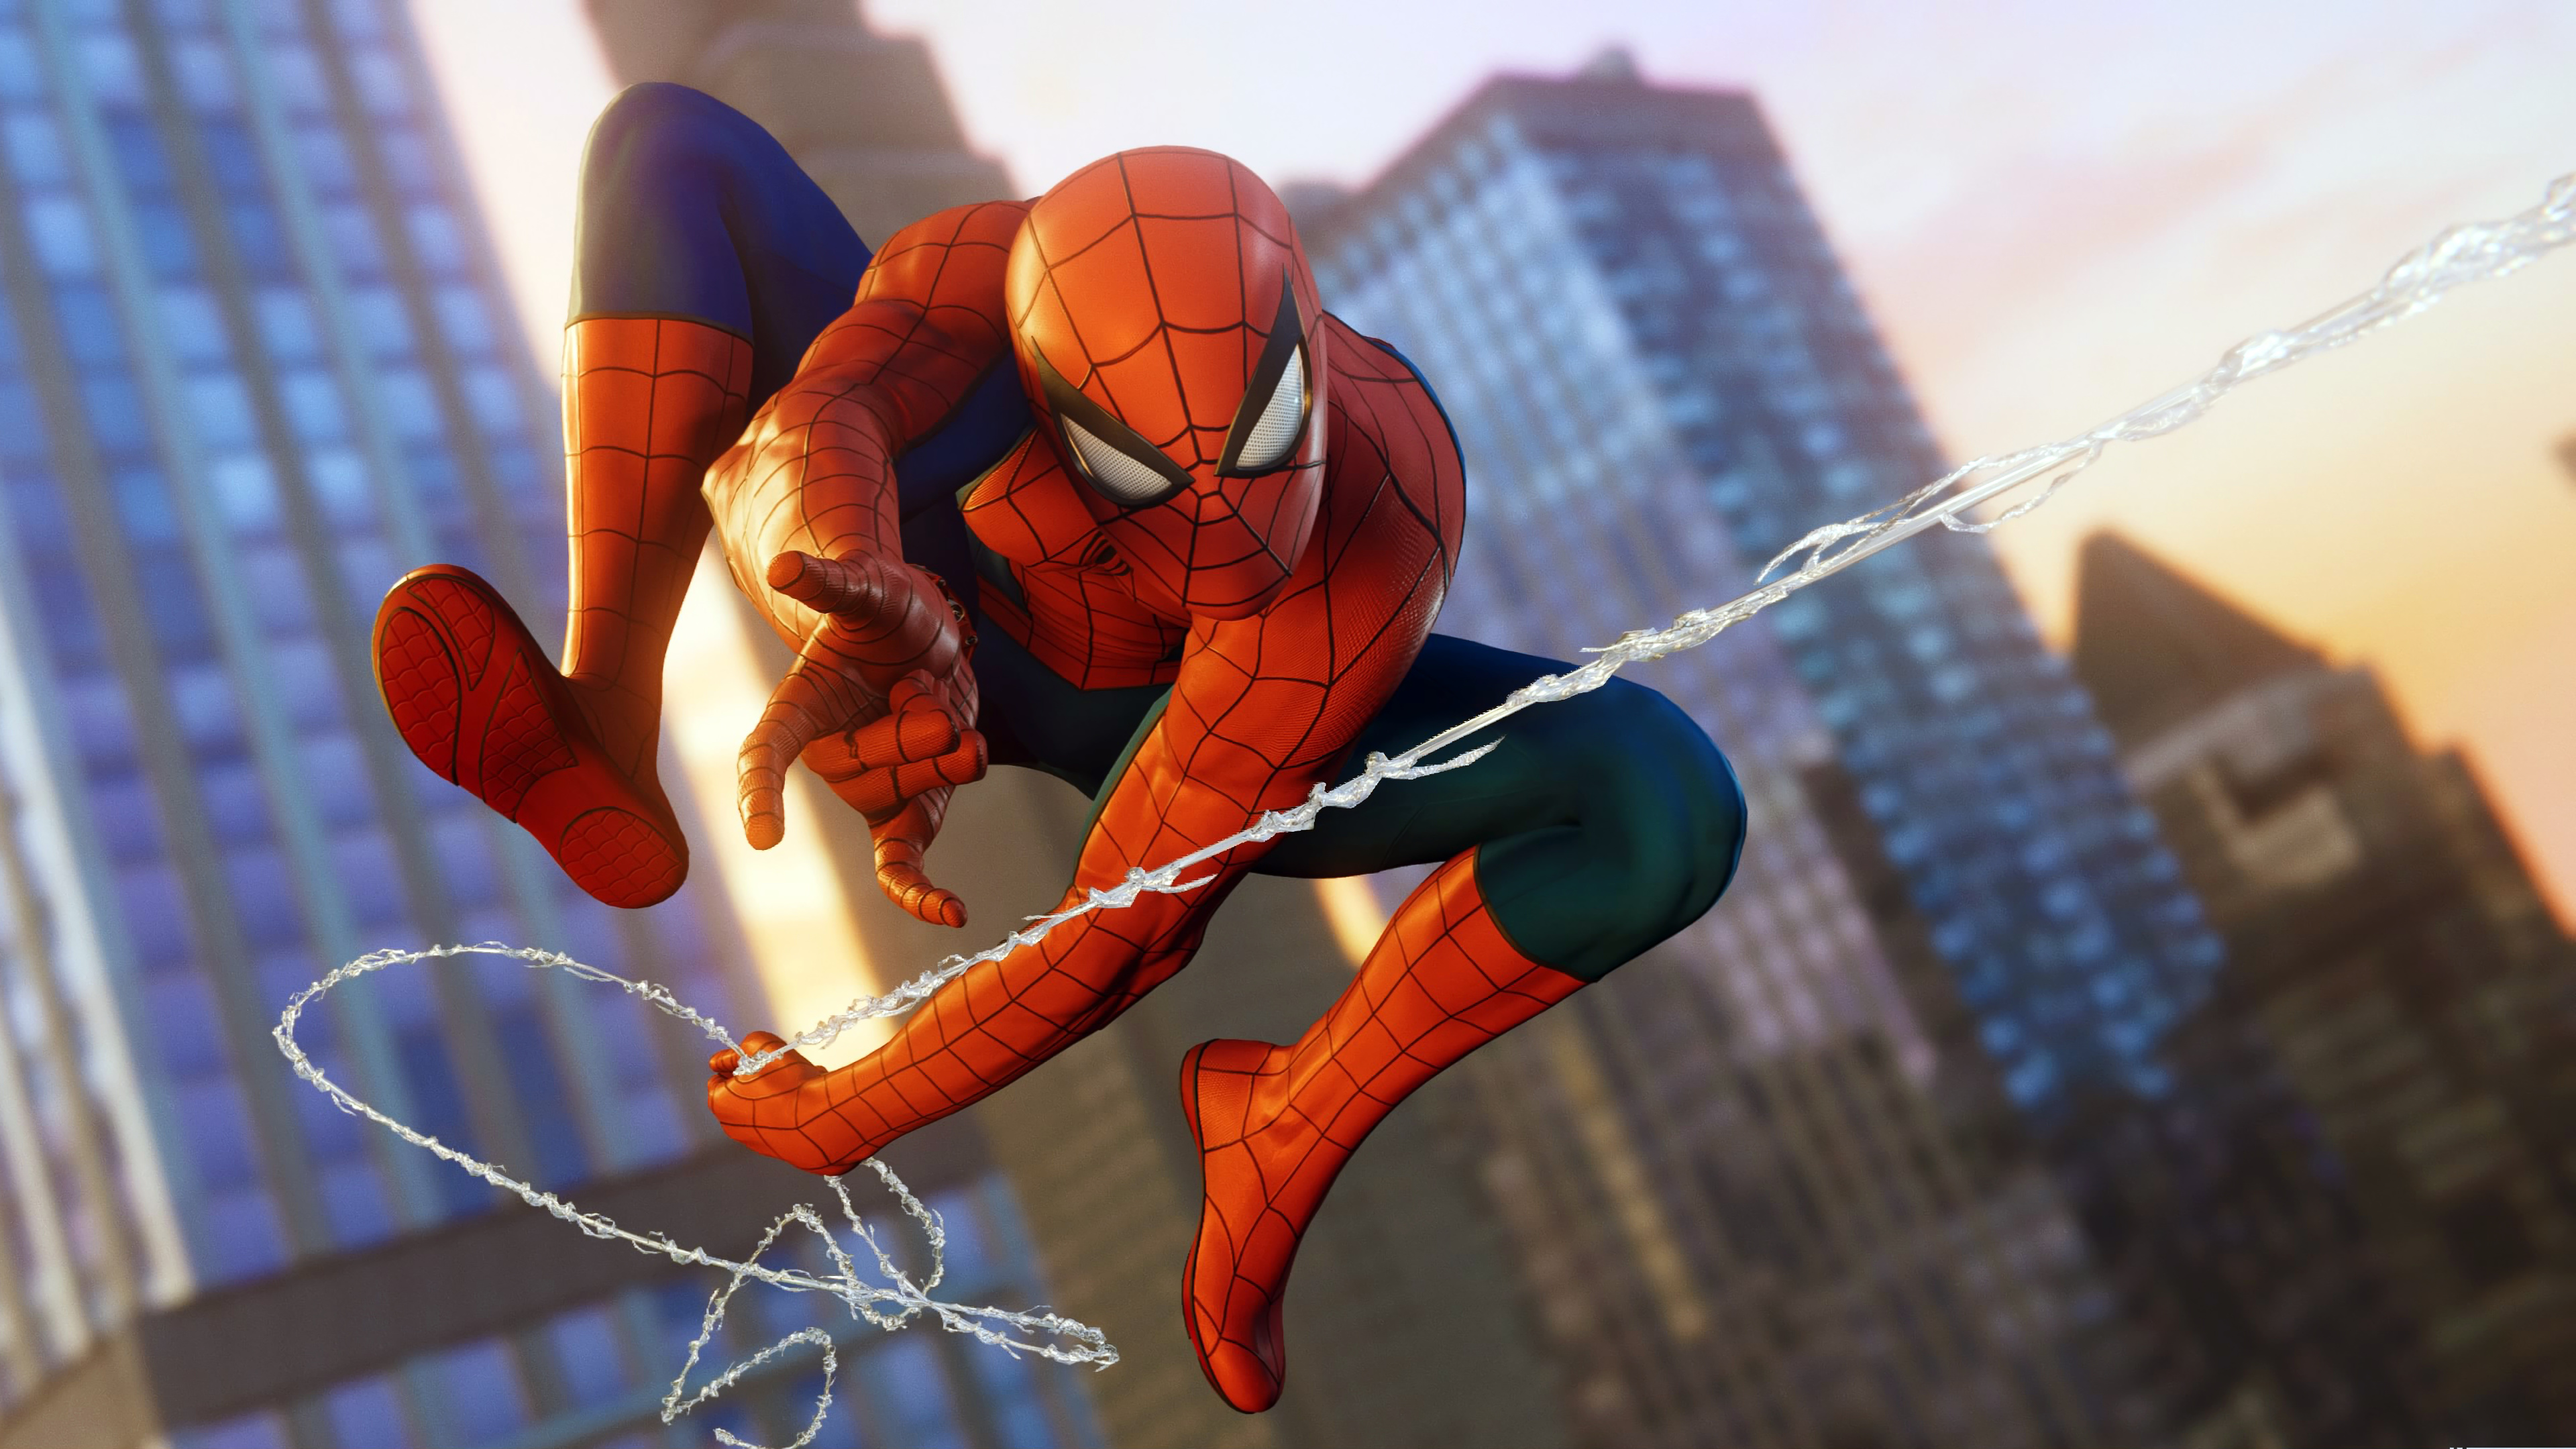 Marvel S Spider Man Ps4 Web Swing 4k Ultra Hd Wallpaper